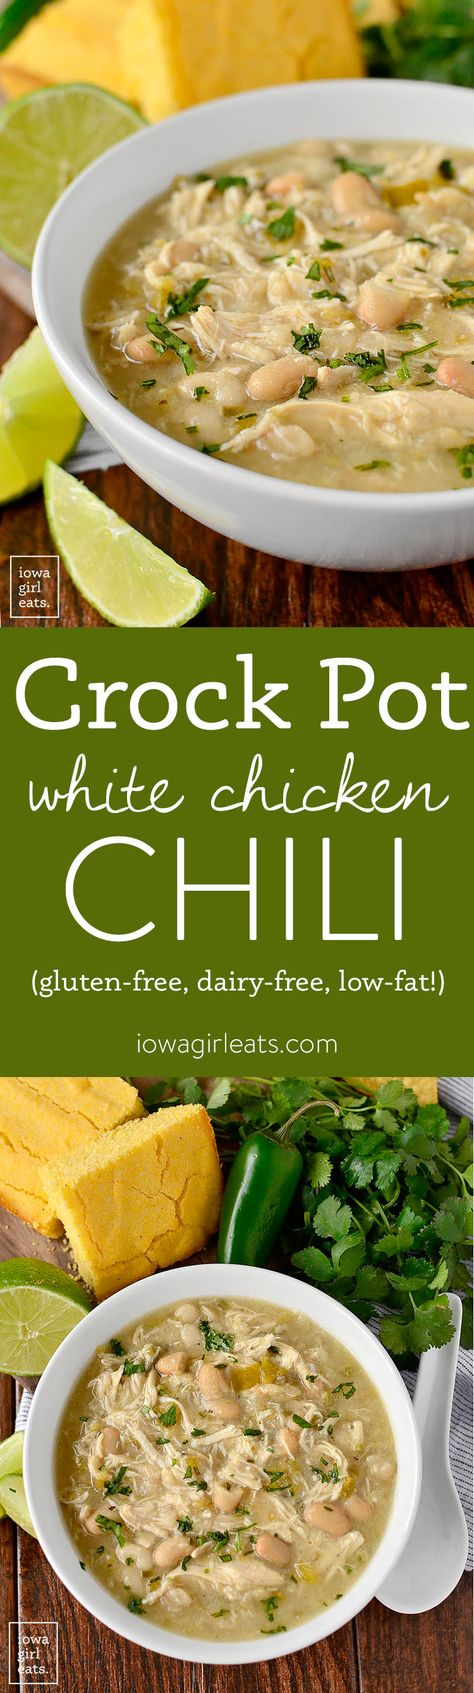 Crock Pot White Chicken Chili is hearty and filling yet low-fat, gluten and dairy-free! | iowagirleats.com